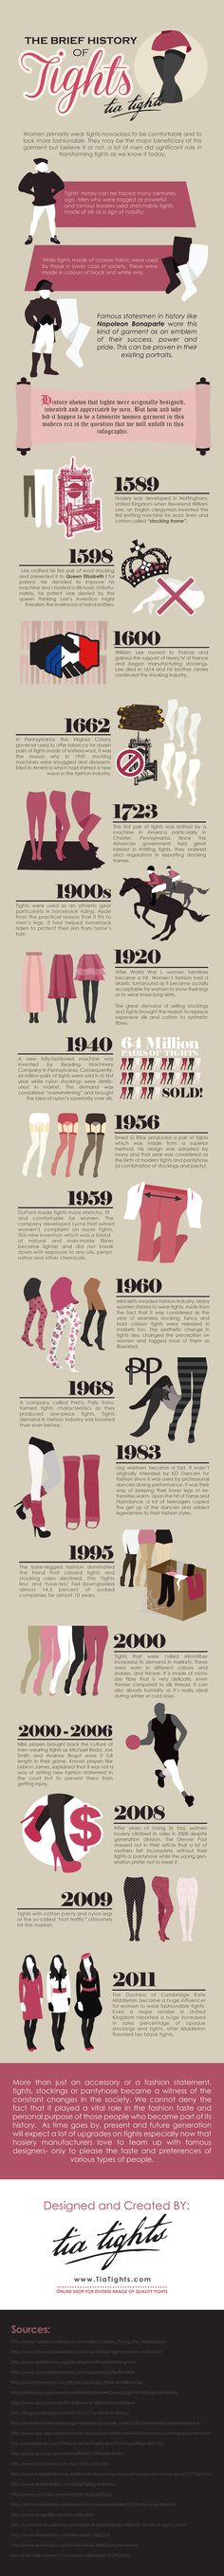 The Brief History of Tights #infographic